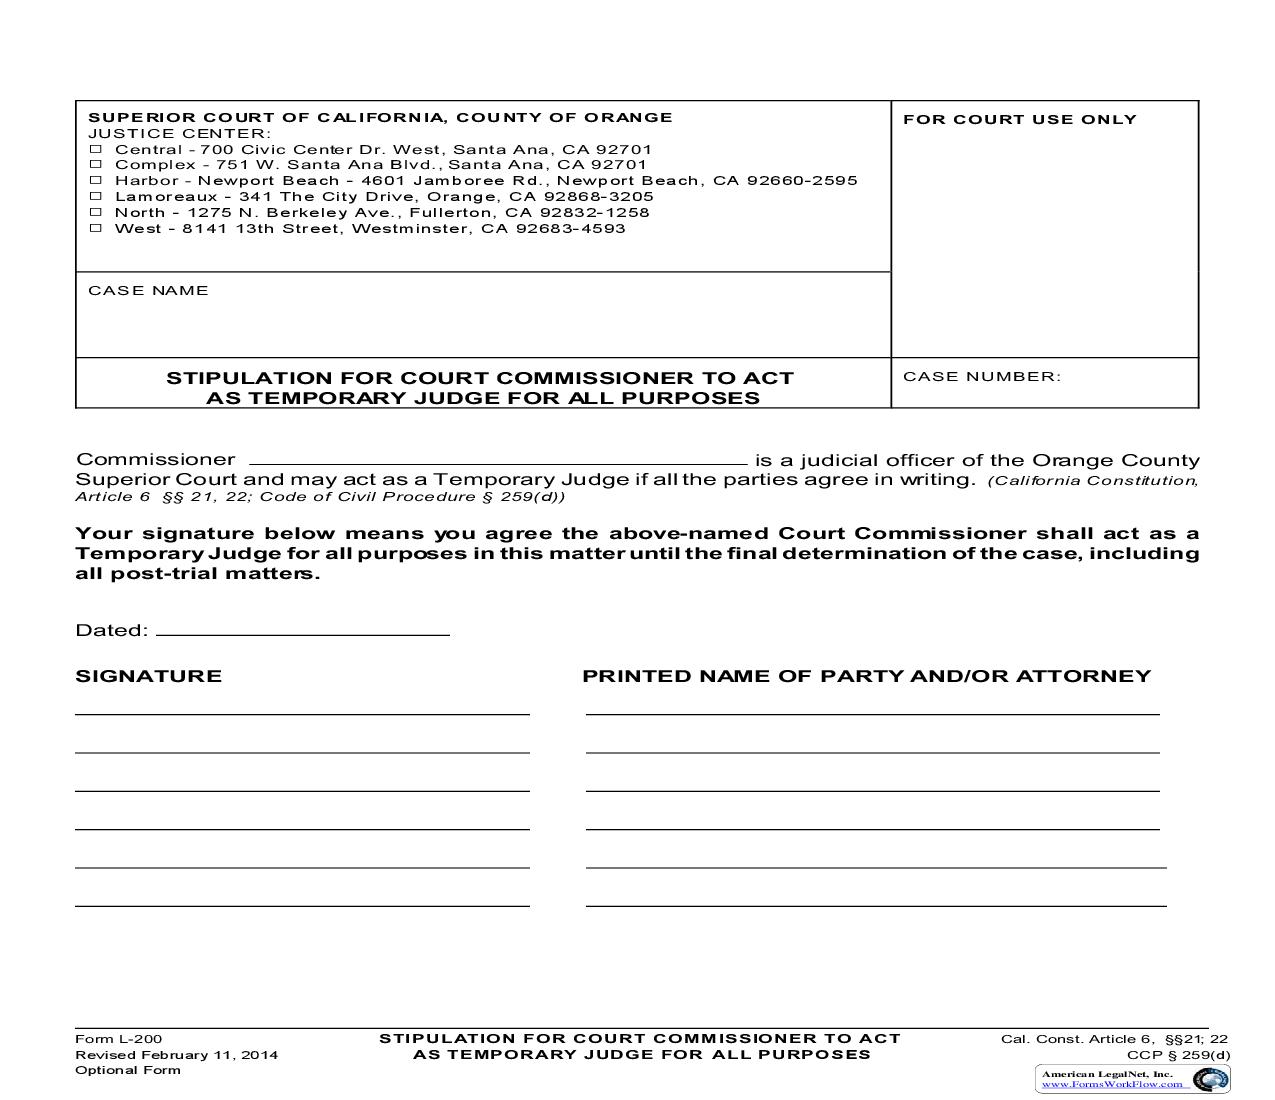 Stipulation For Court Commissioner To Act As Temporary Judge For All Purposes {L-0200} | Pdf Fpdf Doc Docx | California